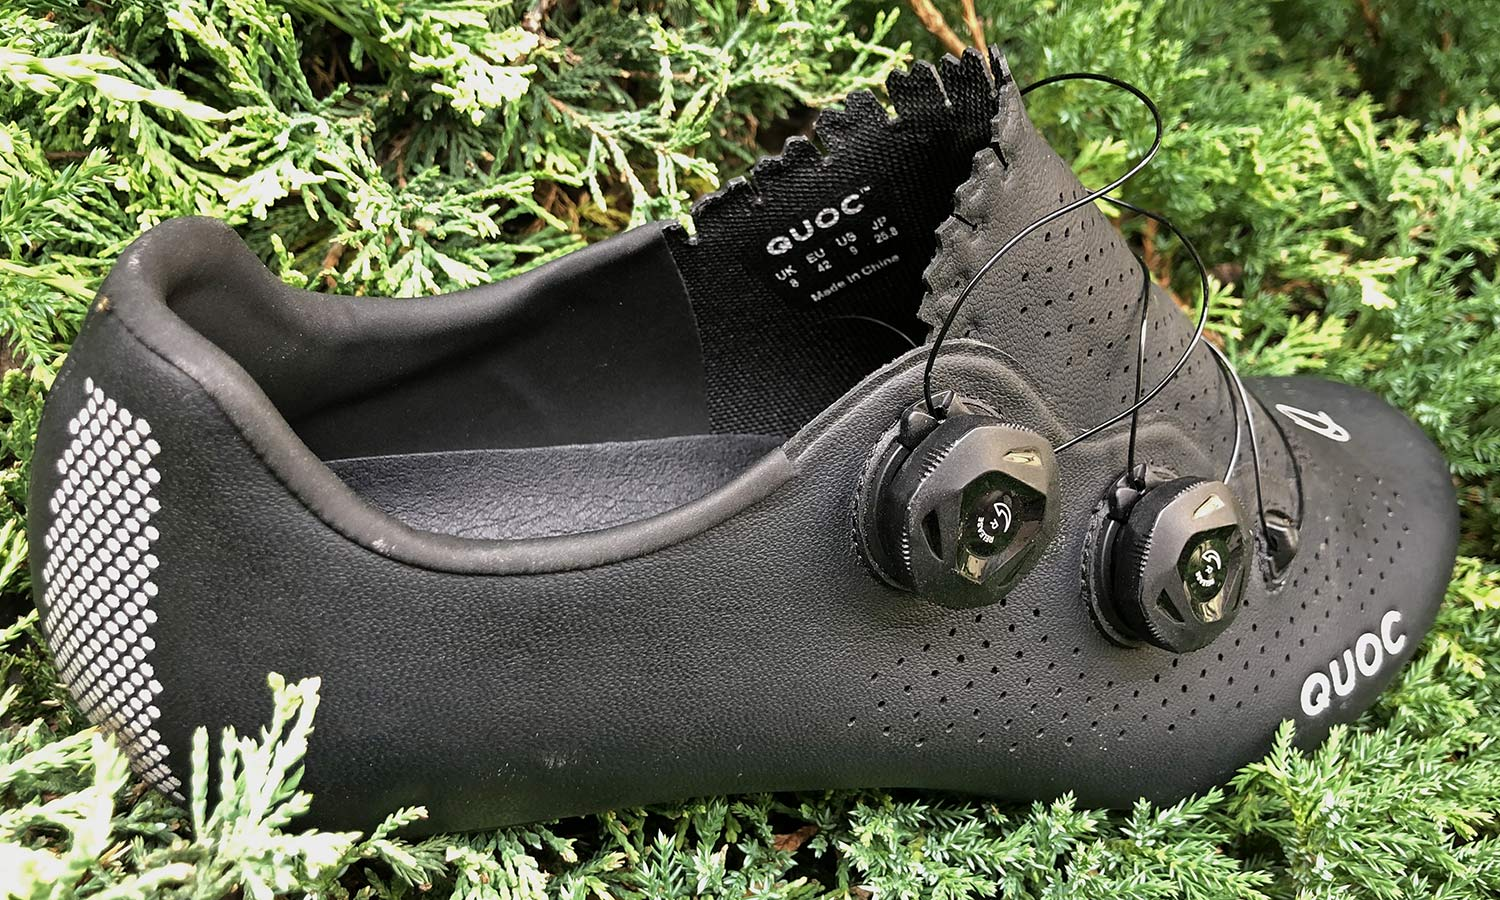 Quoc Mono II lightweight carbon-soled road cycling shoes Review,heel padding